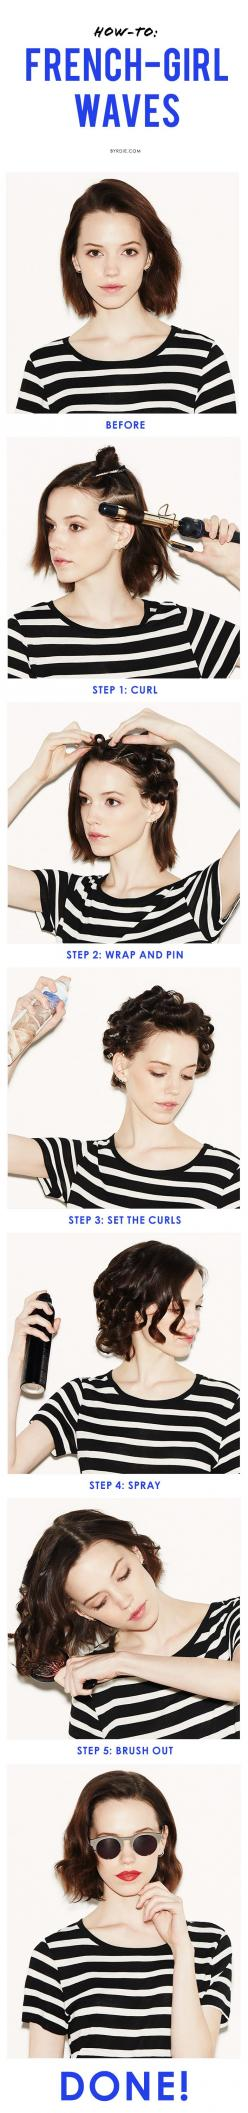 Your step-by-step guide to effortless, cool-girl waves for any length.: Short Hair, French Waves, Hair Tutorial, French Girls, Hair Style, Cool Girl Waves, Step By Step Guide